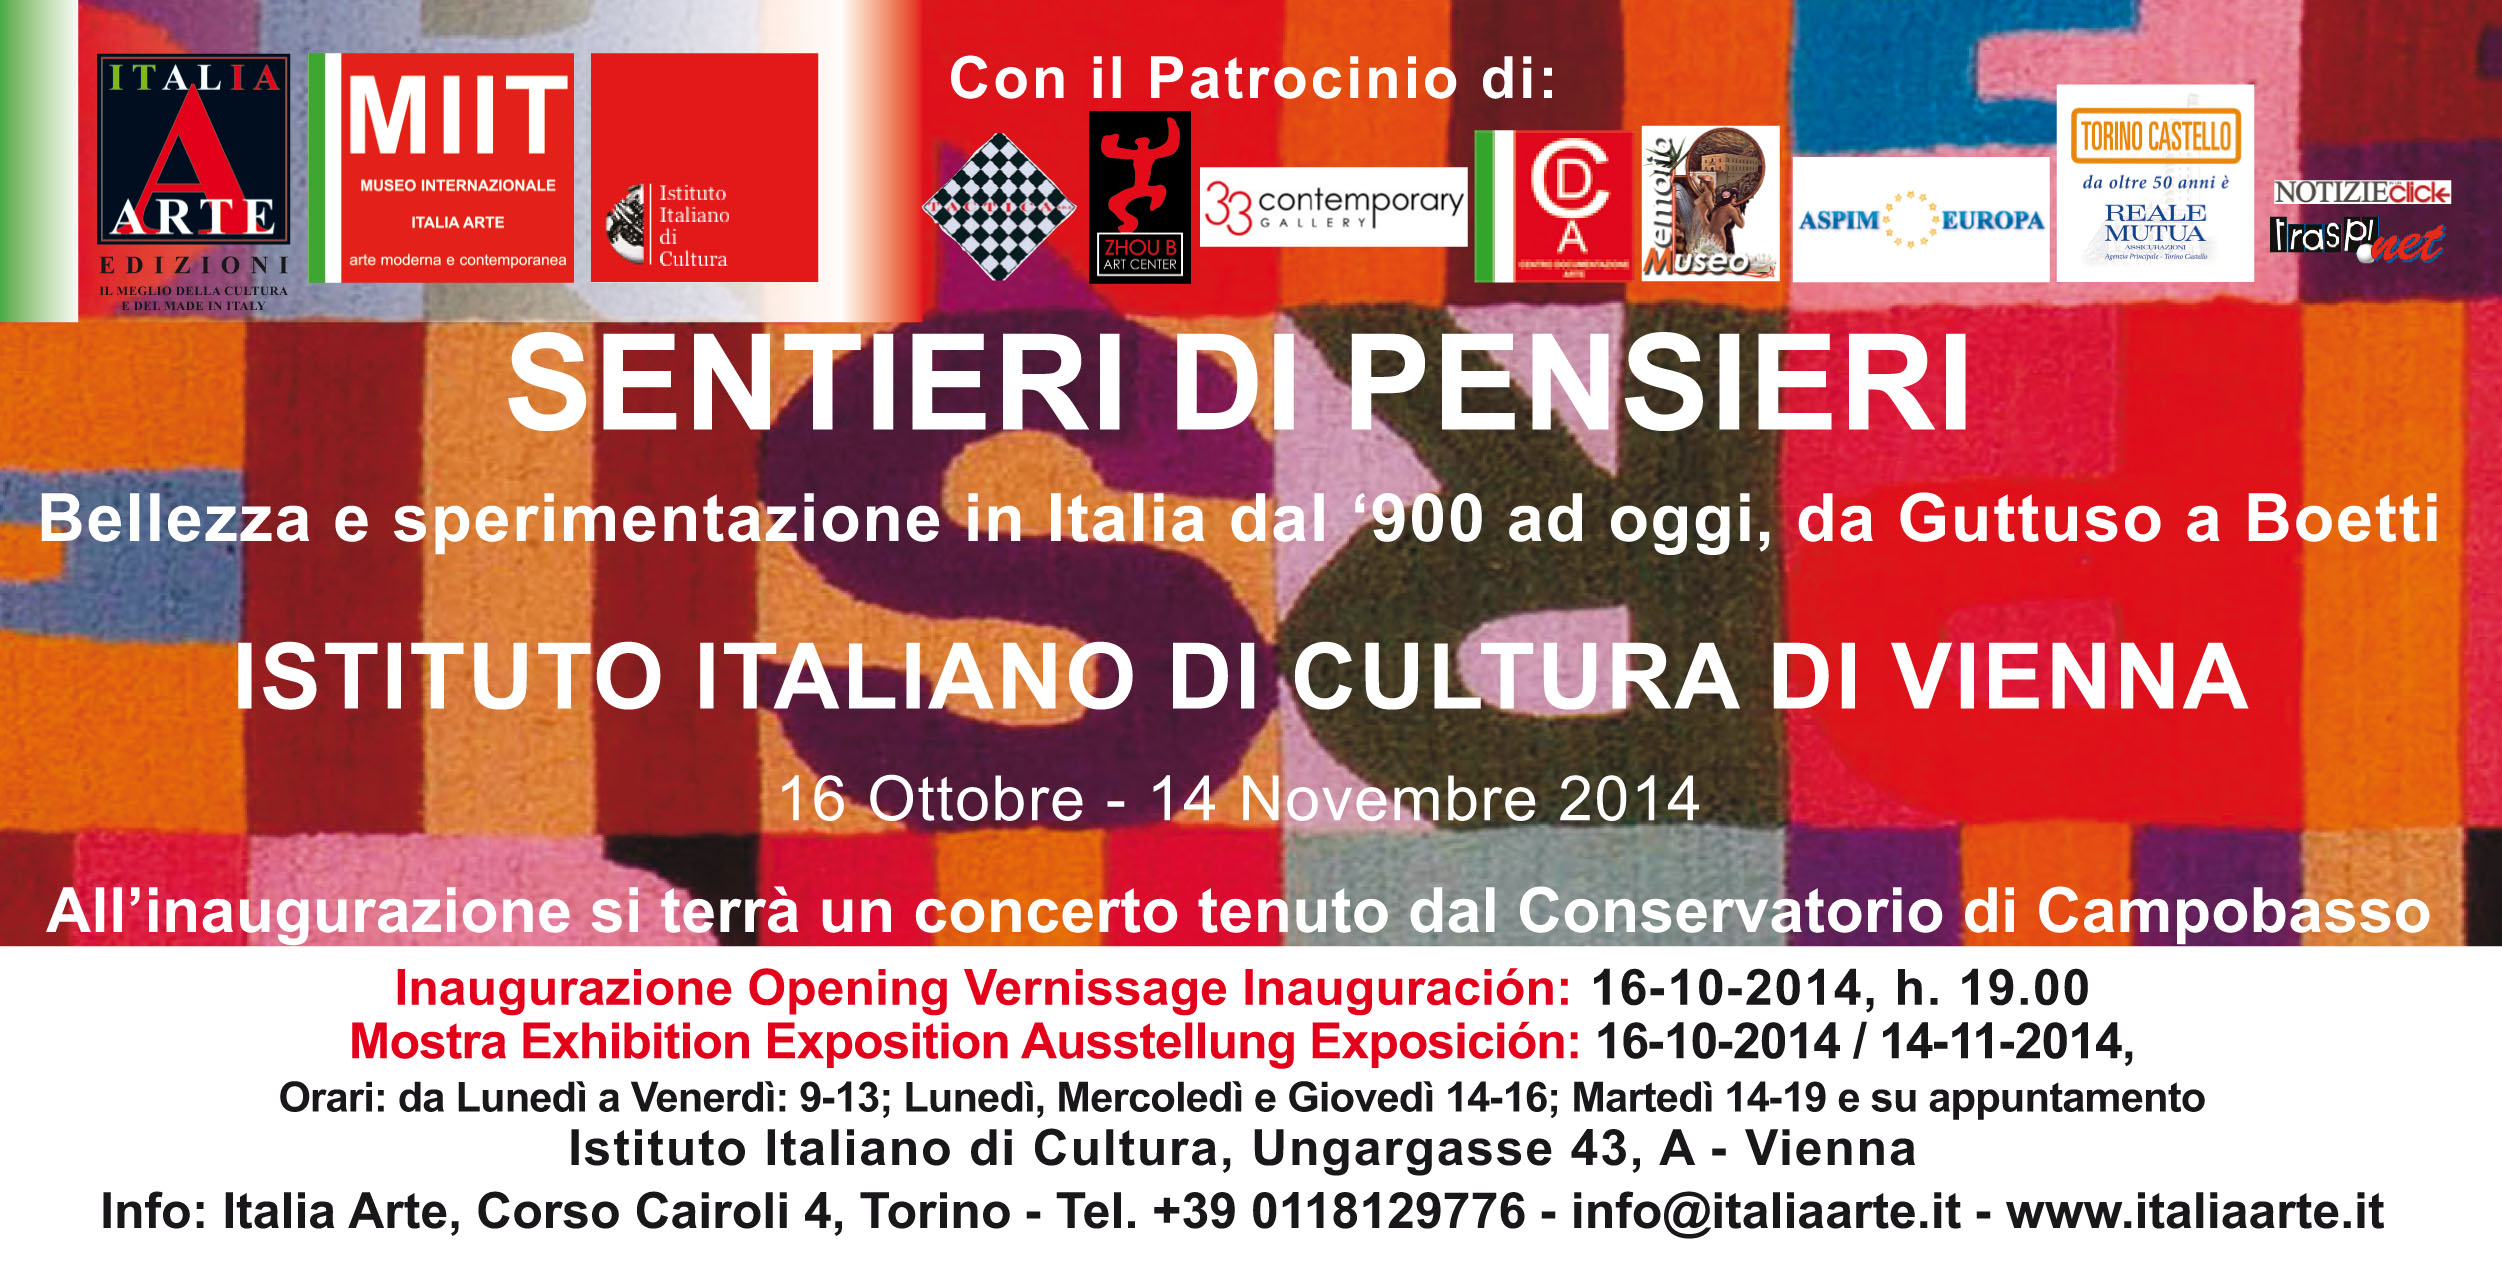 Invitation to collective exhibition at the at the Italian Cultural Institute in Vienna/Austria (Italy) 2014